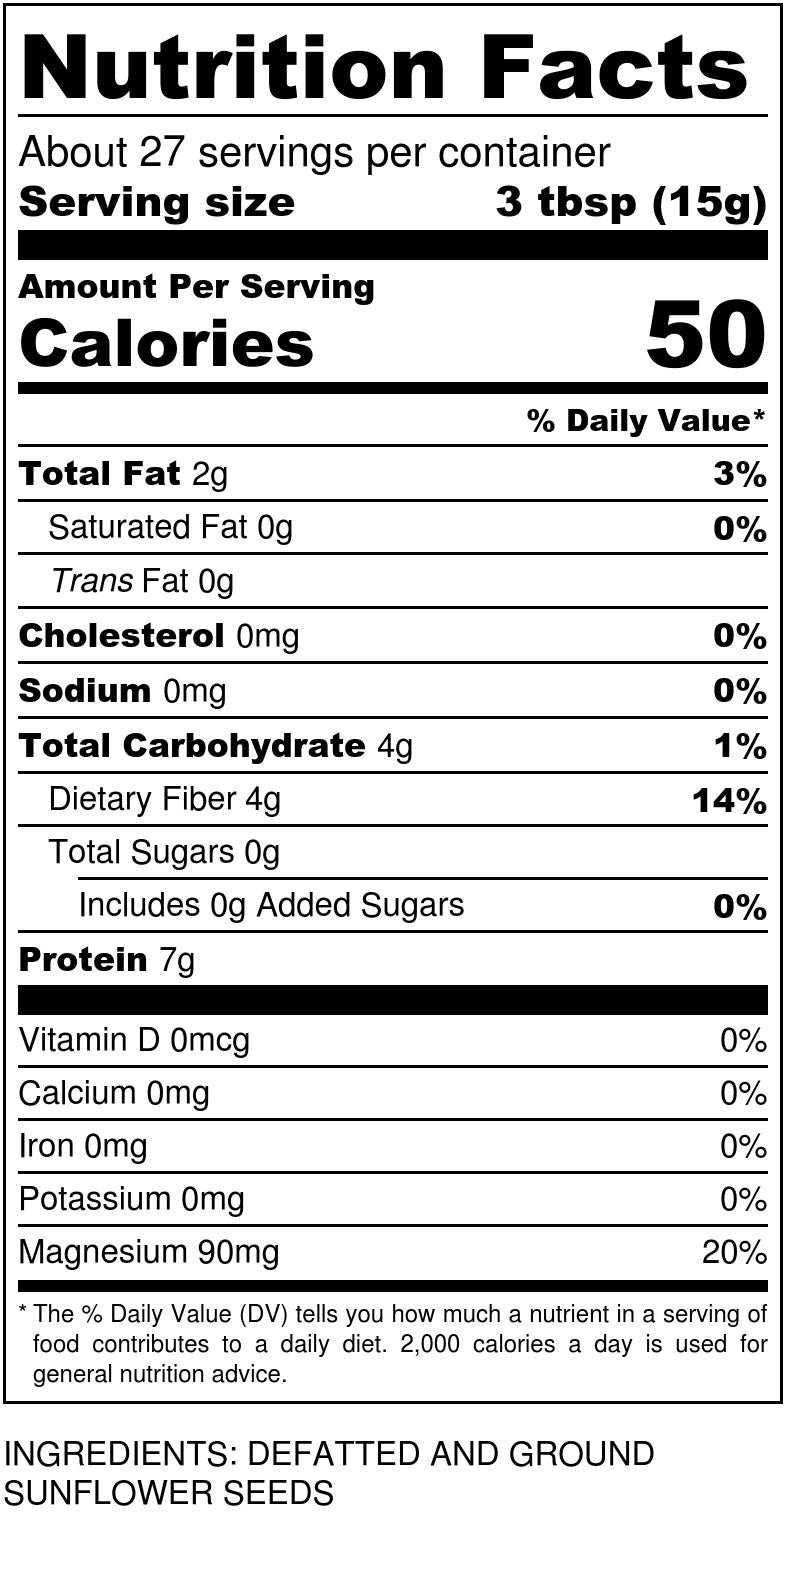 Sun Flour Nutrition Facts